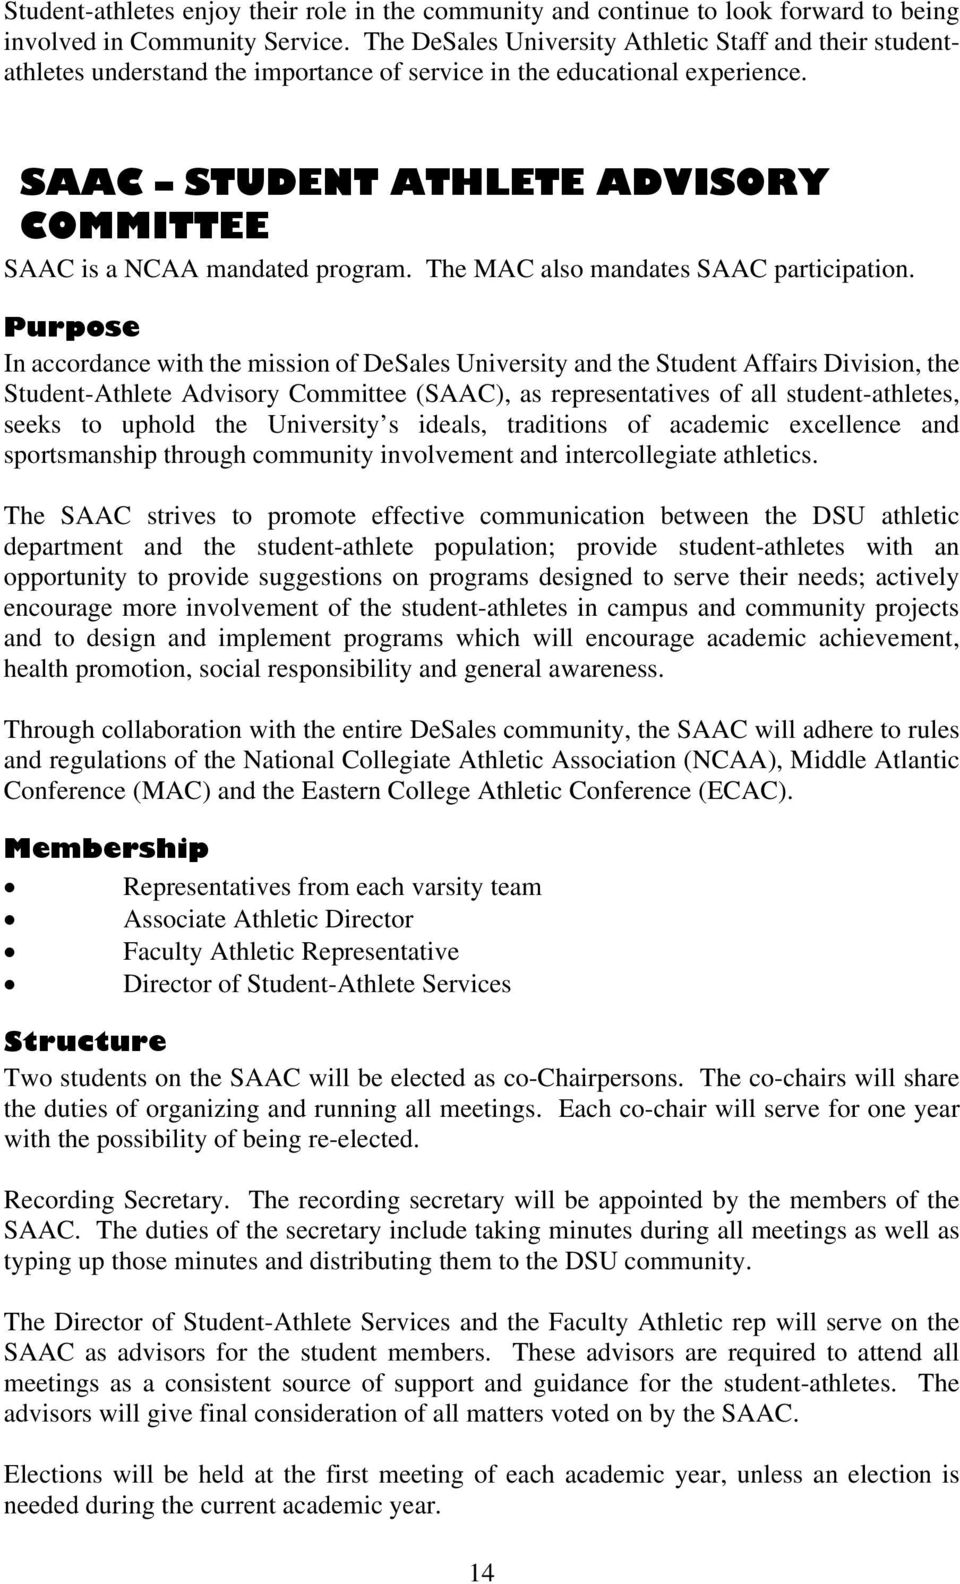 SAAC STUDENT ATHLETE ADVISORY COMMITTEE SAAC is a NCAA mandated program. The MAC also mandates SAAC participation.